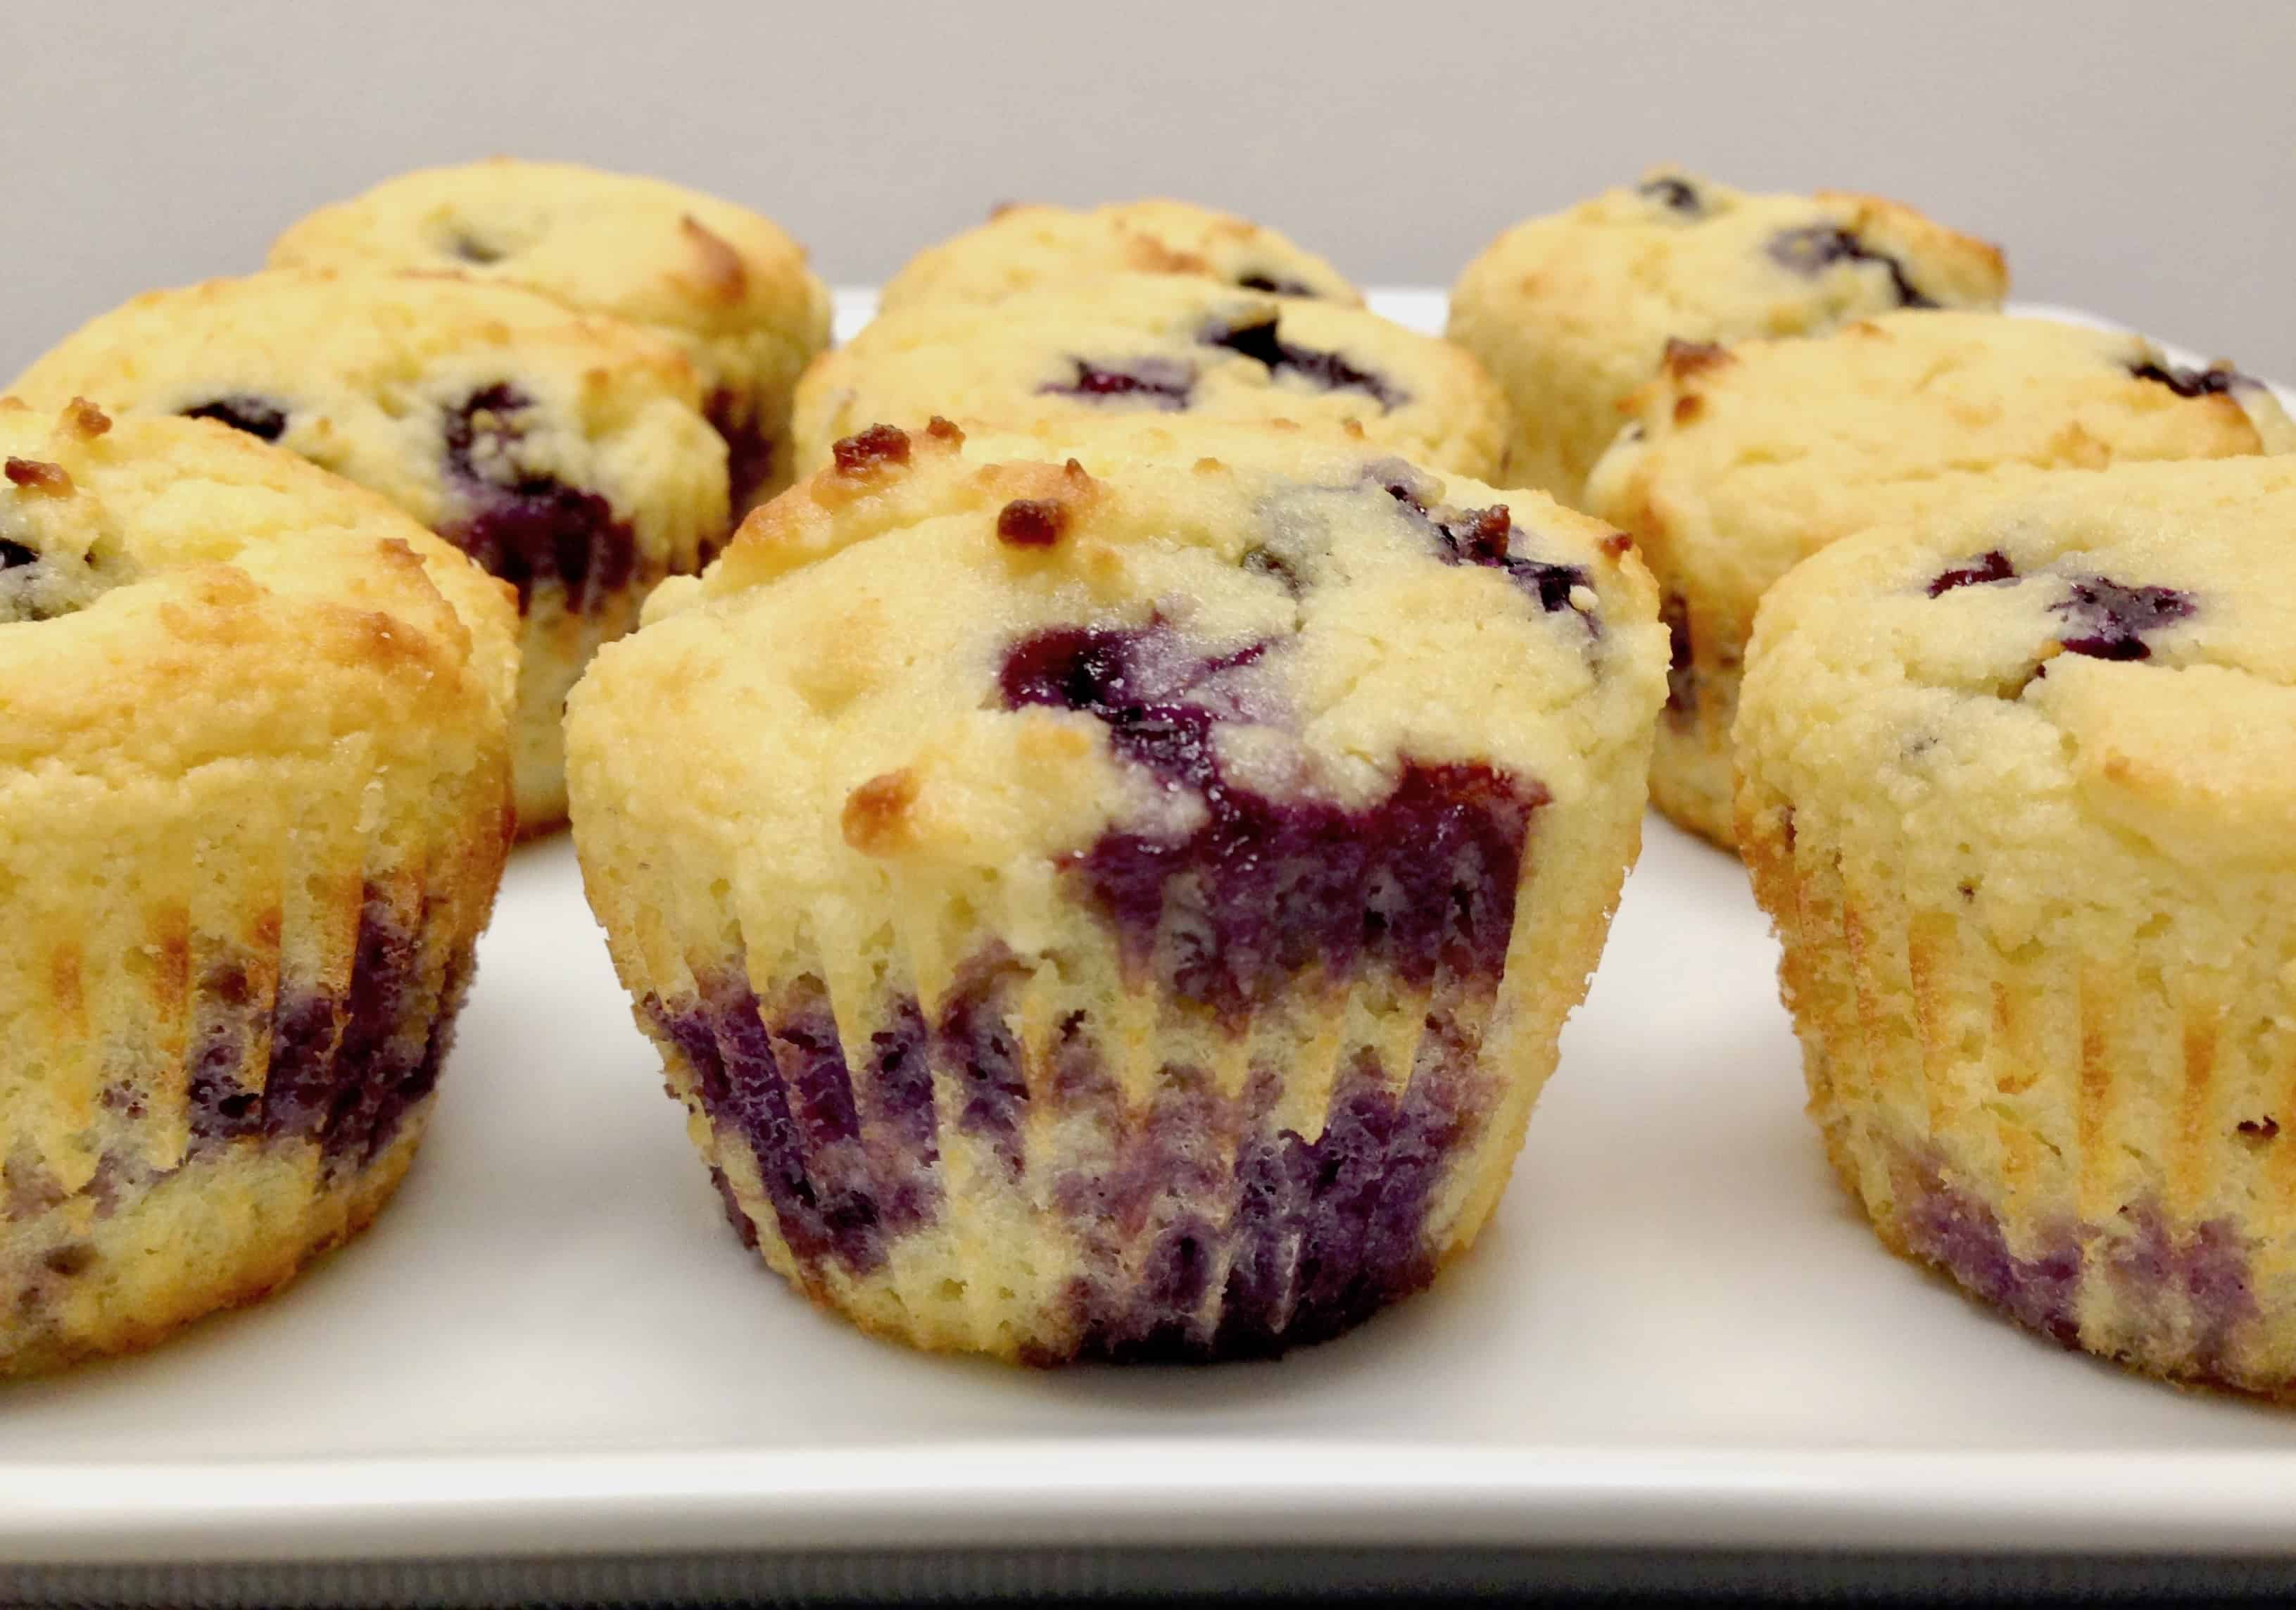 Blueberry Lemon Muffins - Keto, Low Carb & Gluten Free